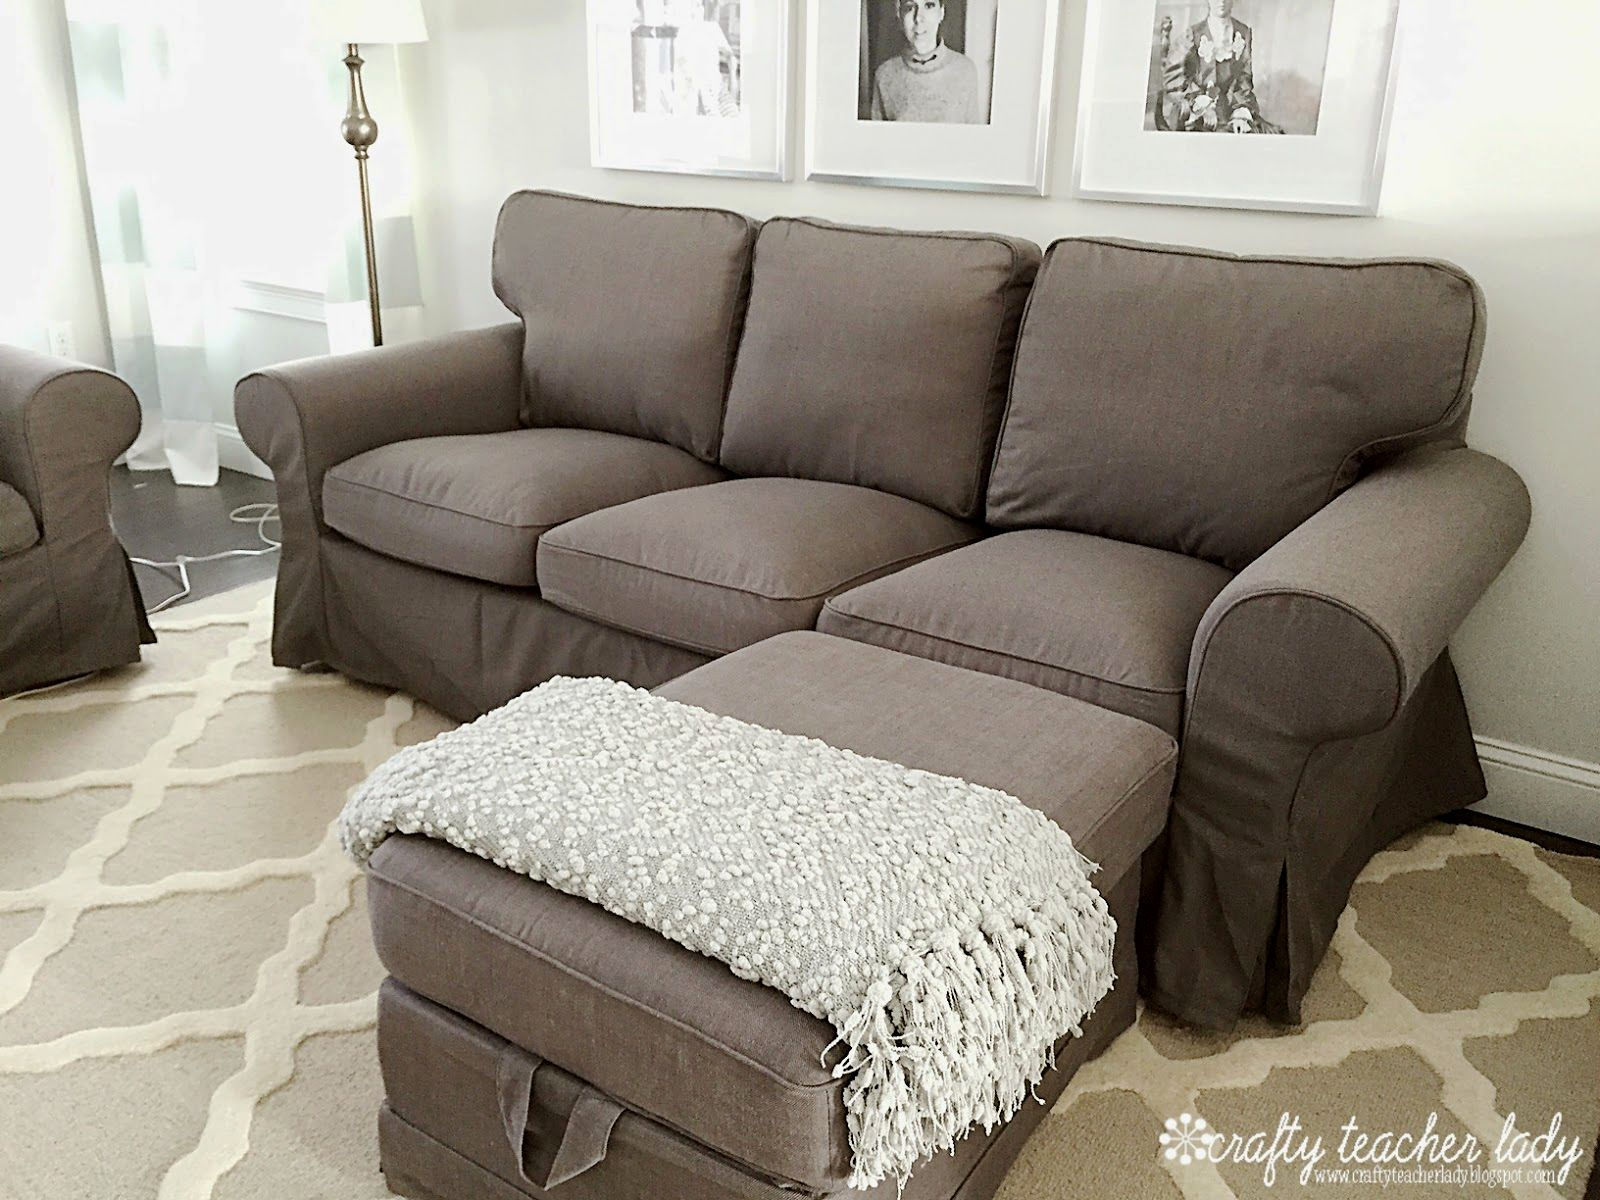 lovely ektorp sofa review image-Cute Ektorp sofa Review Photograph